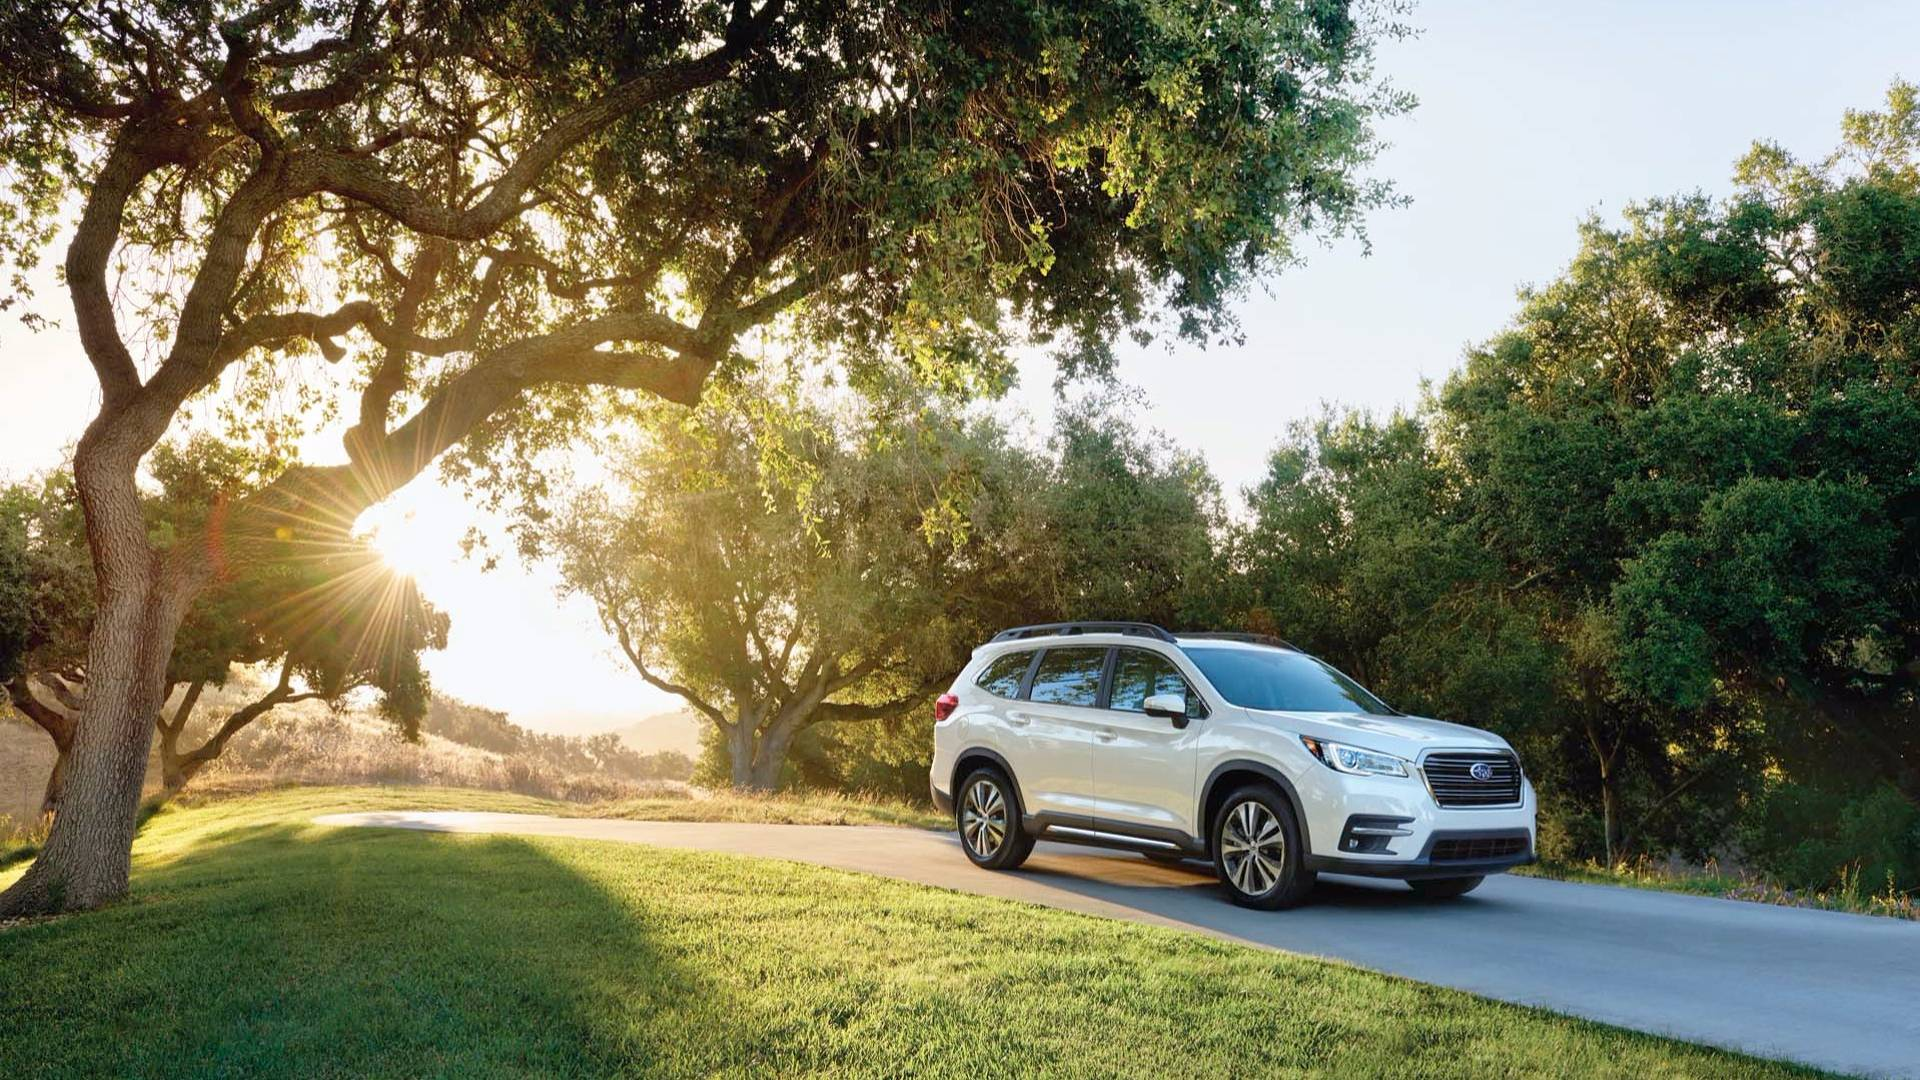 2019_Subaru_Ascent_16